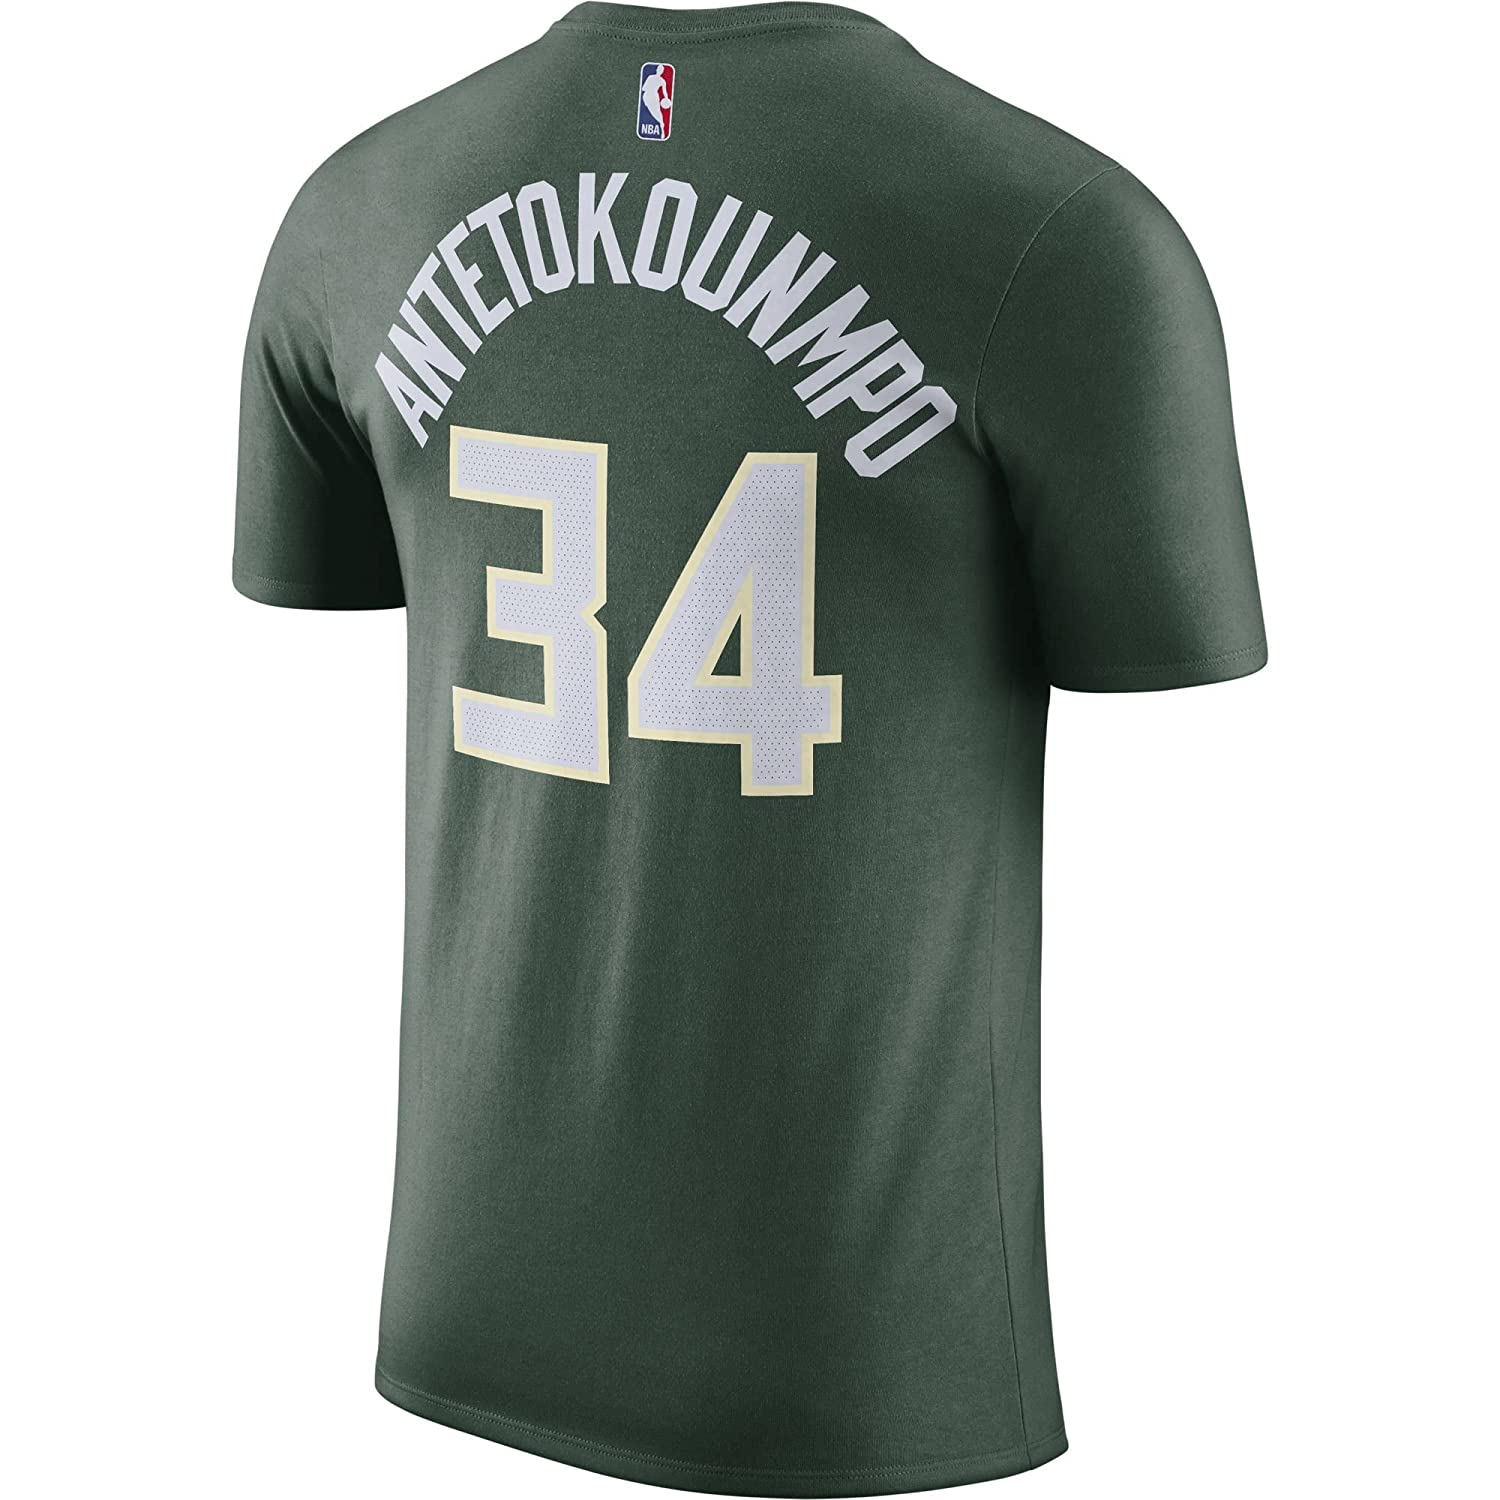 Nike NBA Milwaukee Bucks Giannis Antetokounmpo 2017 2018 Dry N&N Official, Camiseta de Hombre: Amazon.es: Ropa y accesorios